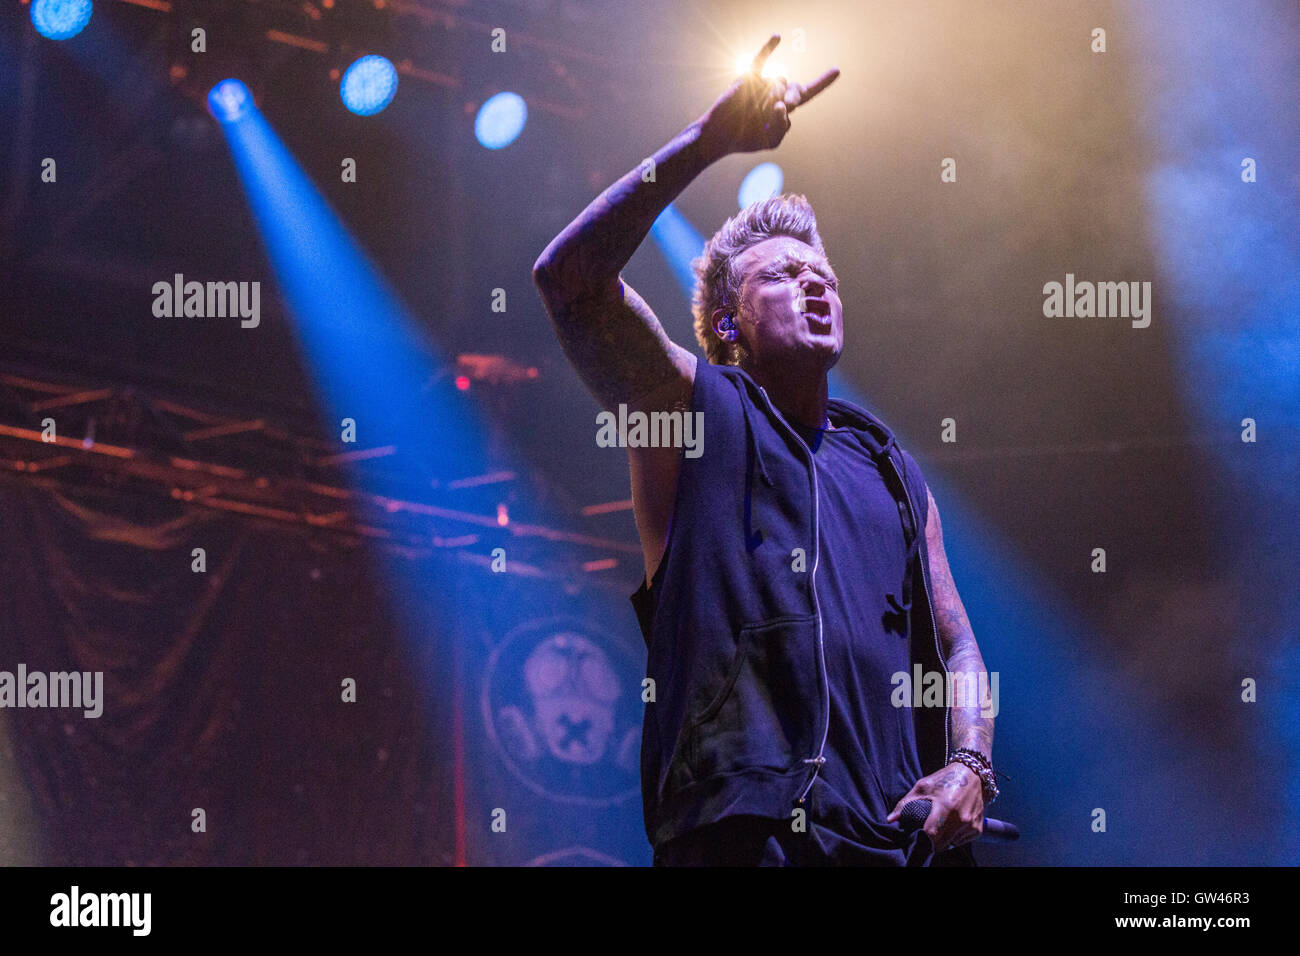 Jacoby Shaddix of Papa Roach at Abbotsford Centre on September 9th 2016 - Stock Image